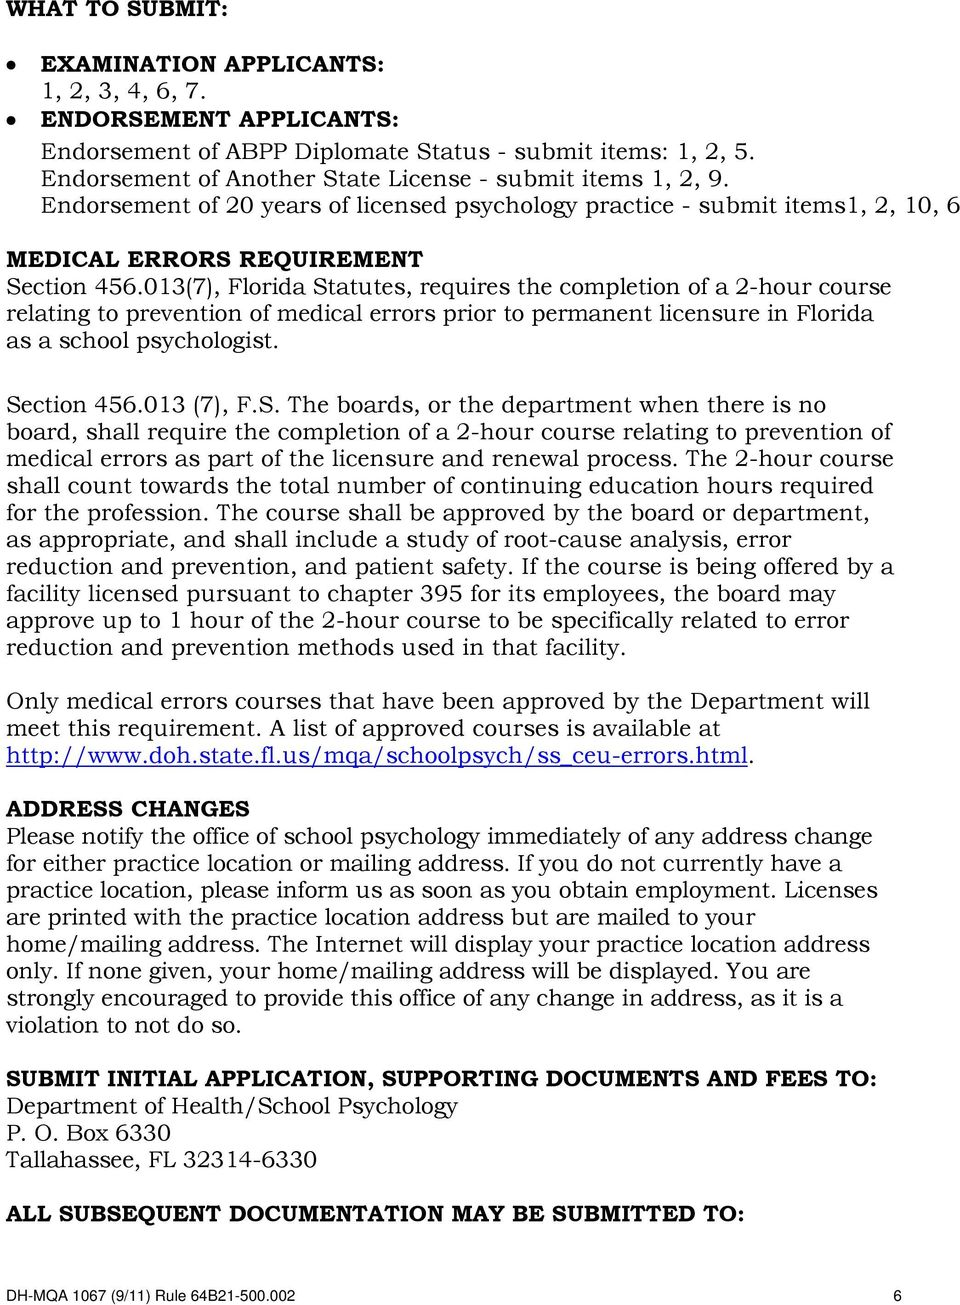 013(7), Florida Statutes, requires the completion of a 2-hour course relating to prevention of medical errors prior to permanent licensure in Florida as a school psychologist. Section 456.013 (7), F.